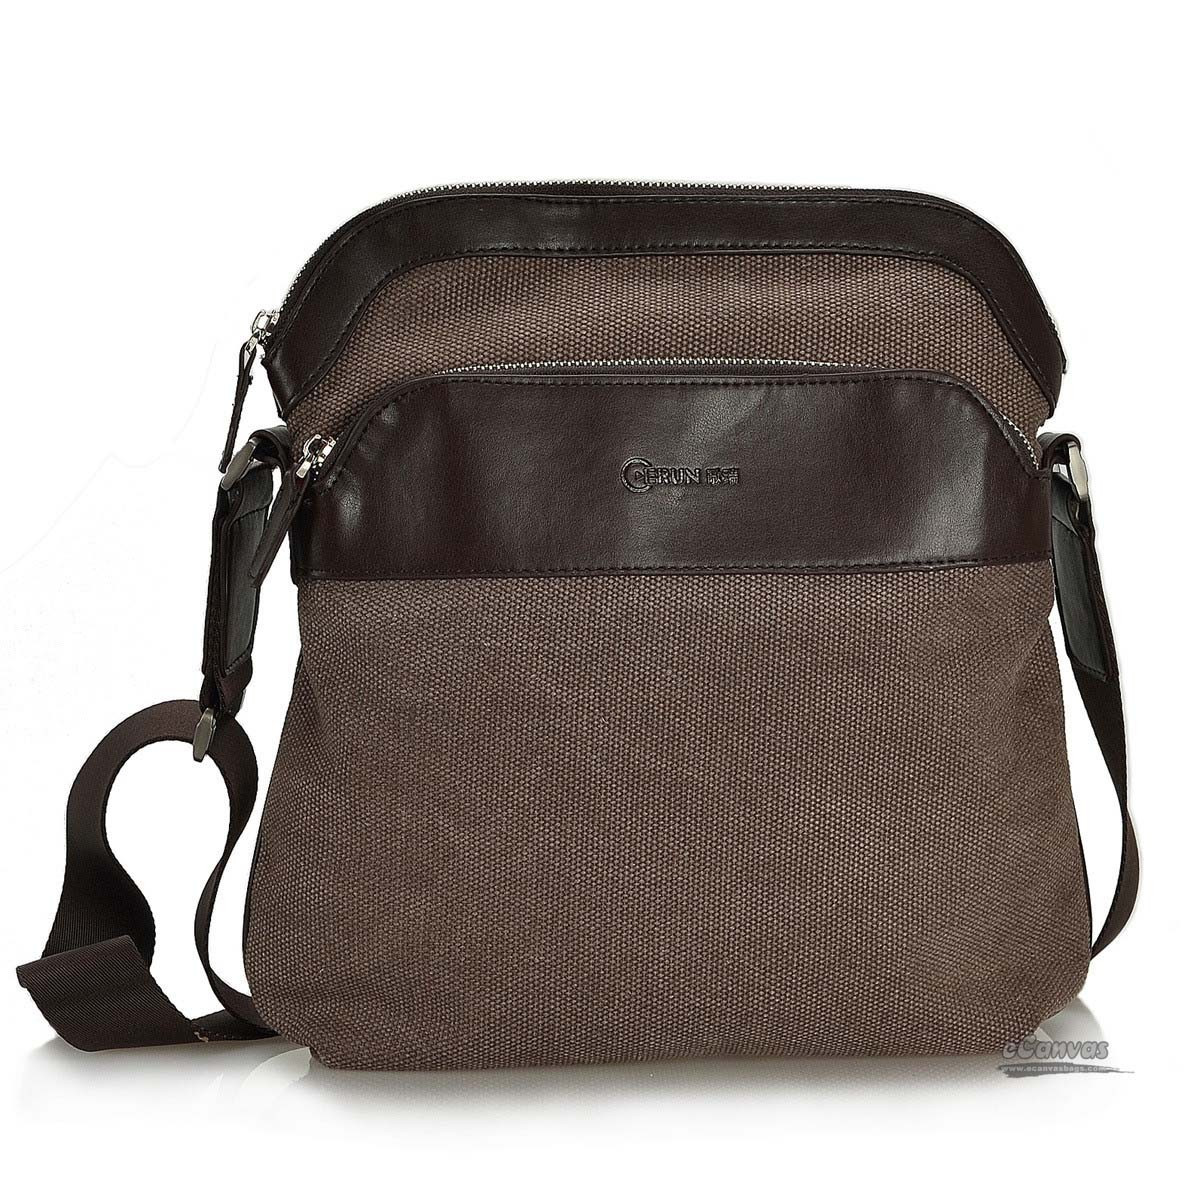 Over the shoulder bag, messanger bag, black, coffee - E-CanvasBags